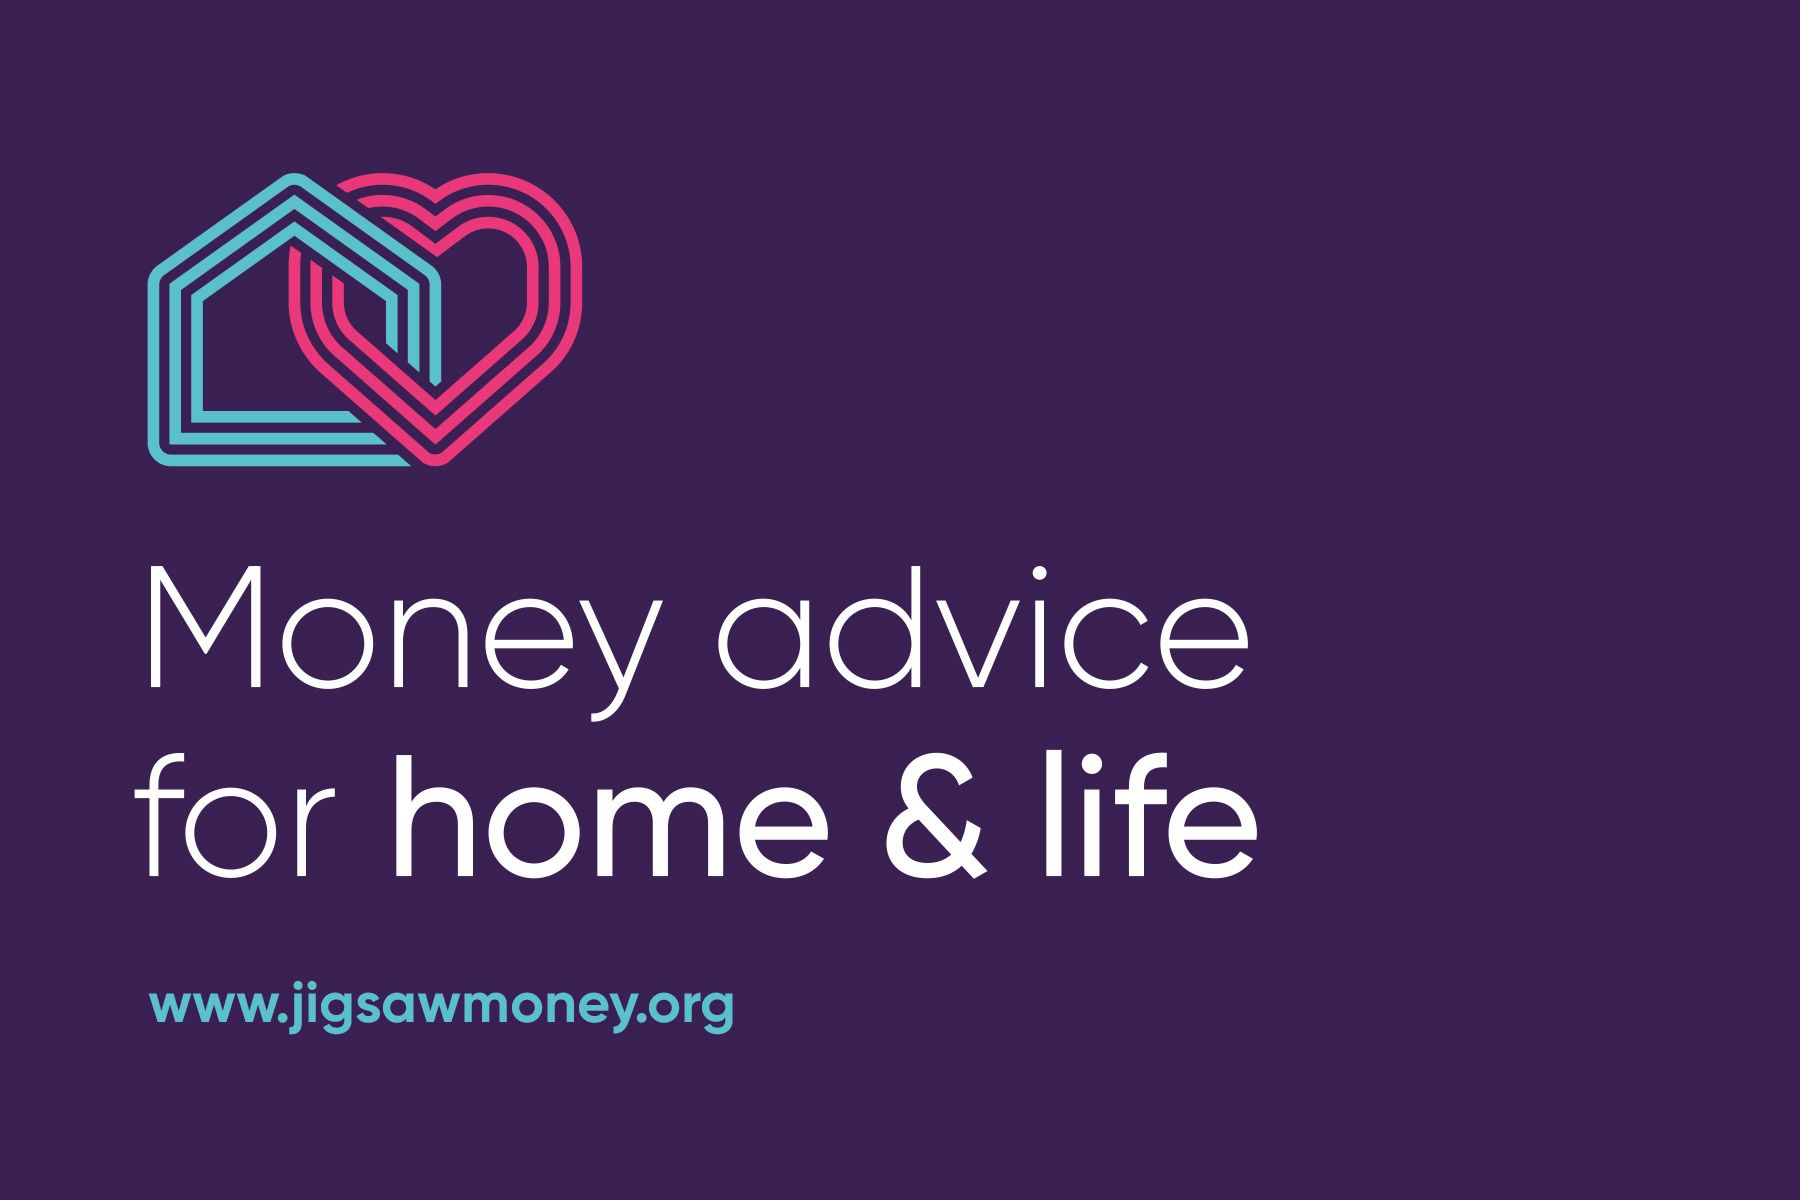 Jigsaw Money / Clear money advice for home and life